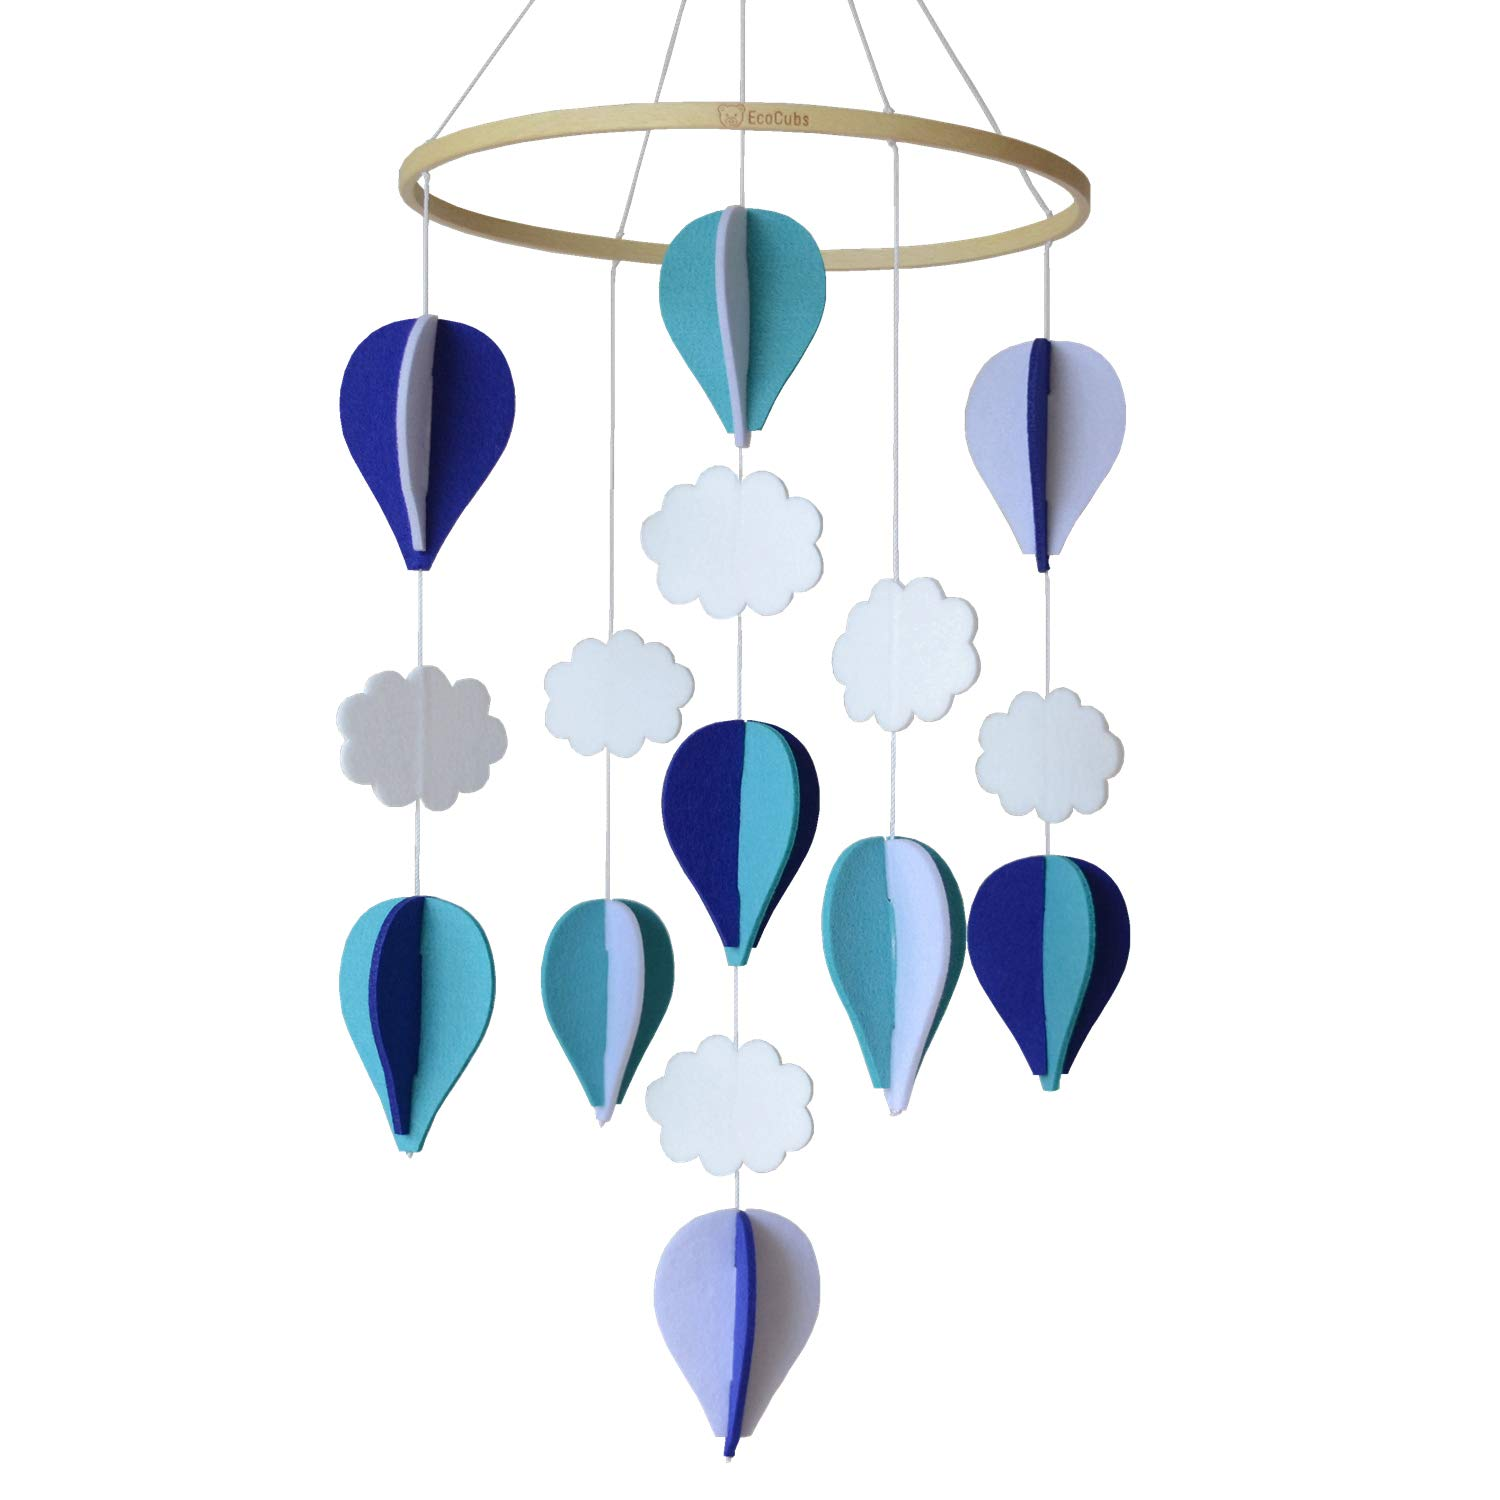 EcoCubs Baby Crib Mobile. Handmade. Navy Blue, Turquoise, Pale Grey and White. Hot Air Balloons and Clouds. Eco Felt and Organic Beech Wood. Nursery Decor. Boy Room Decoration. Unique and Simple by EcoCubs